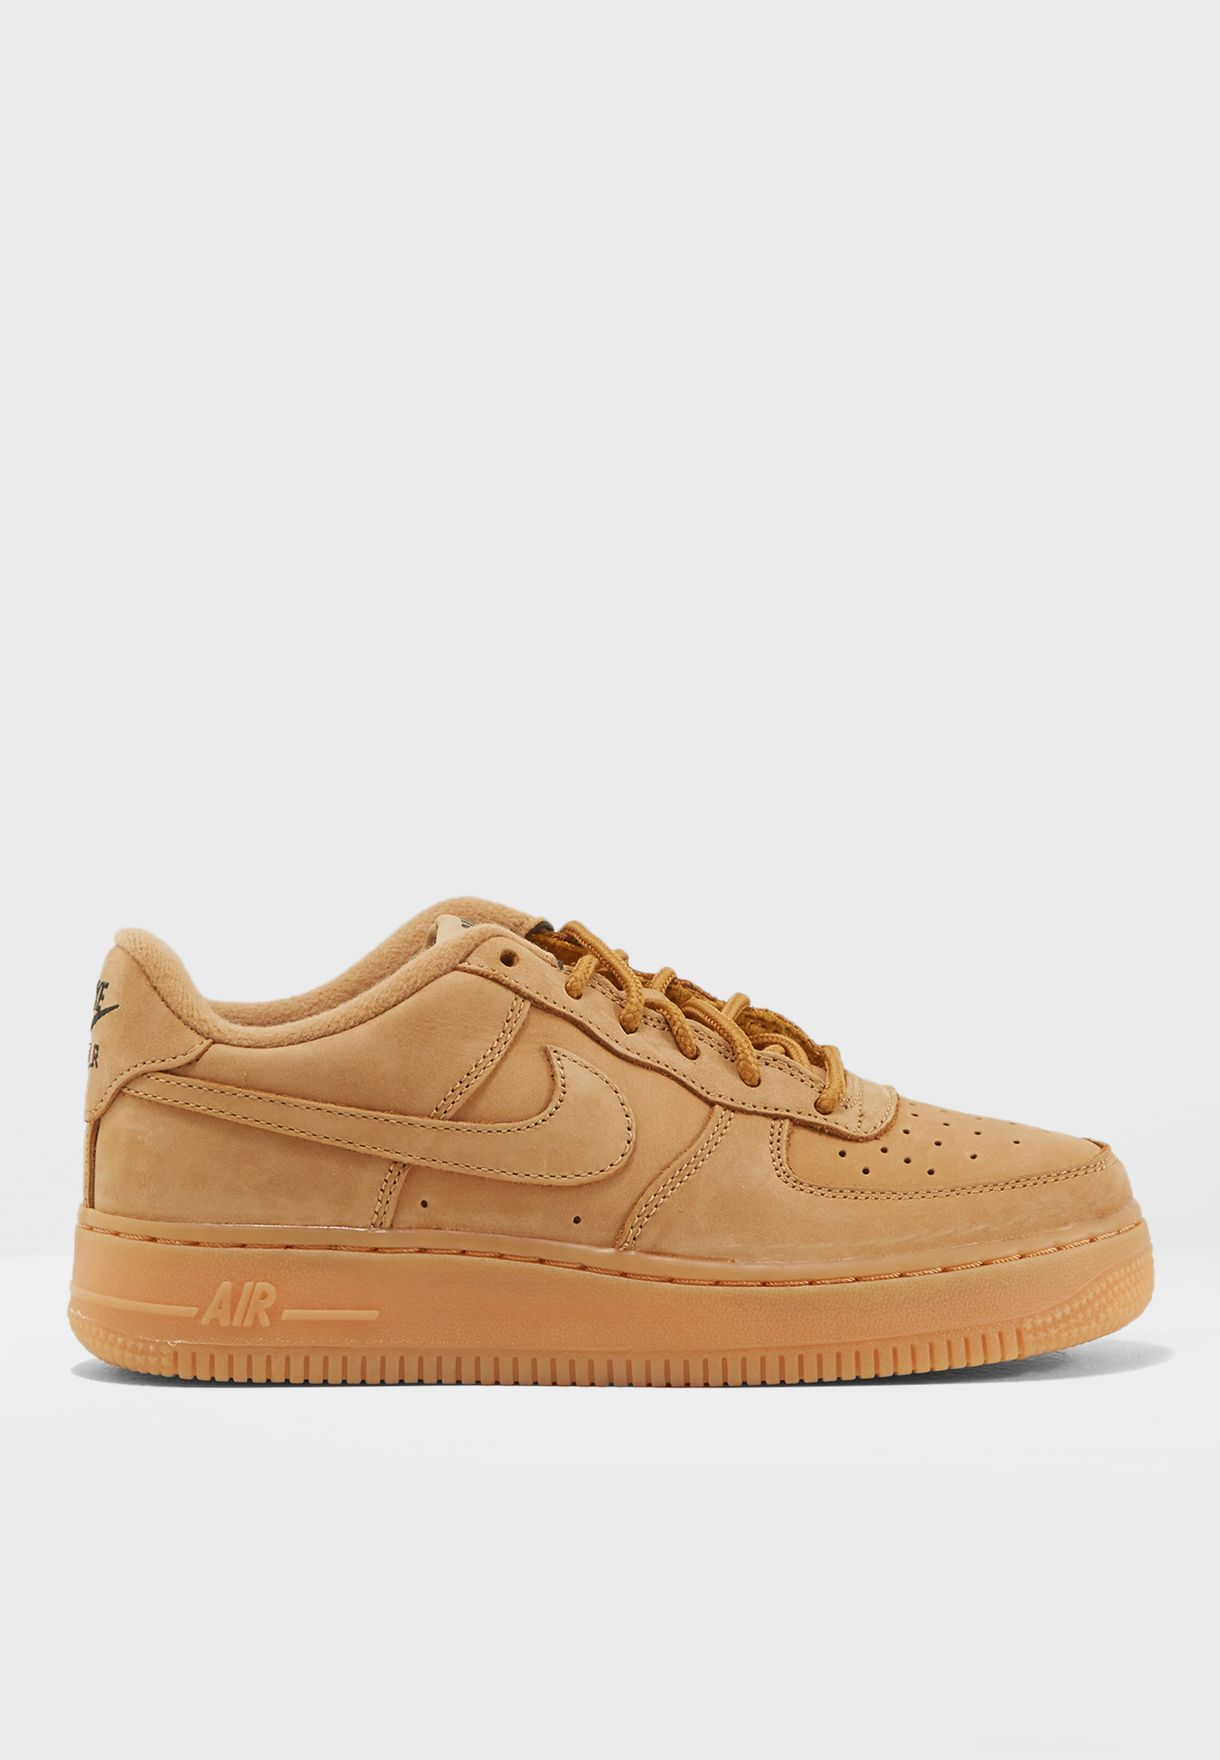 buy online 2b1f1 cb8ae Air Force 1 Winter Prm Youth